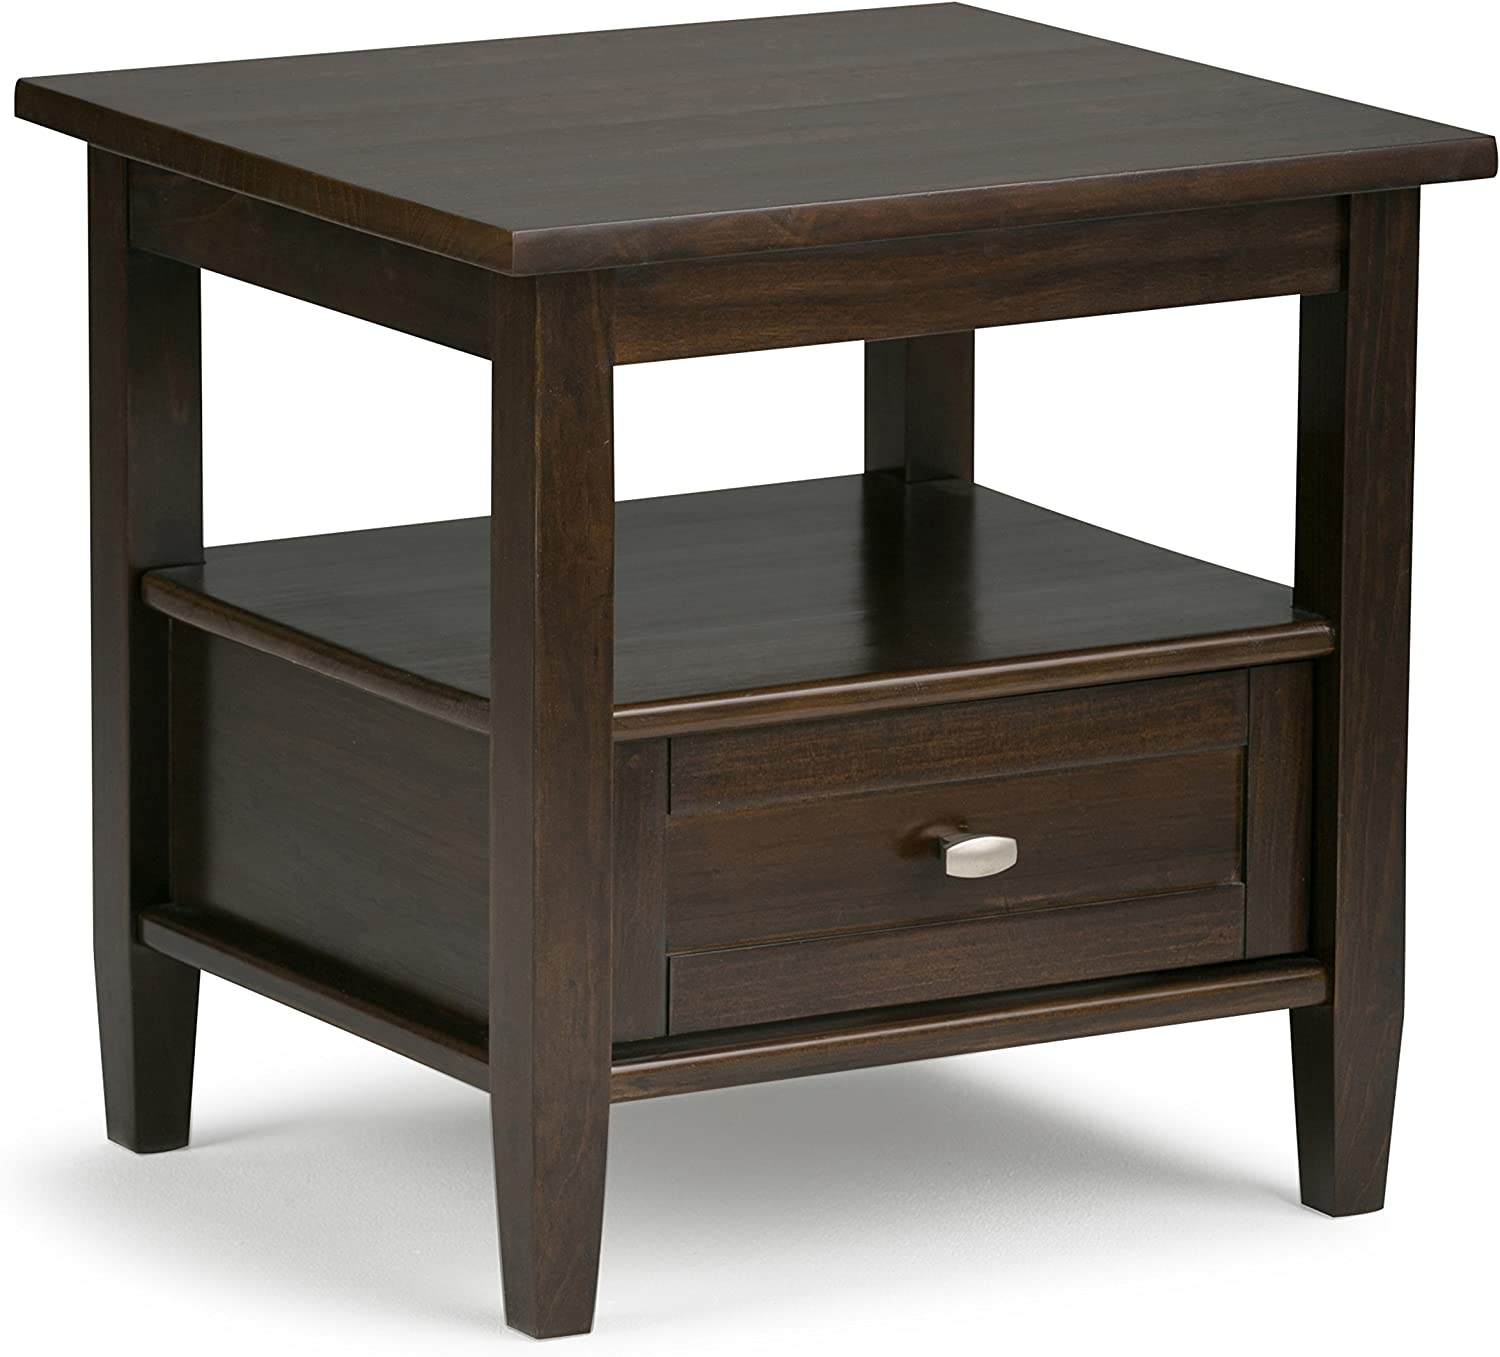 Simpli Home AXWSH002-TB Warm Shaker Solid Wood 20 inch wide Rustic End Side Table in Tobacco Brown